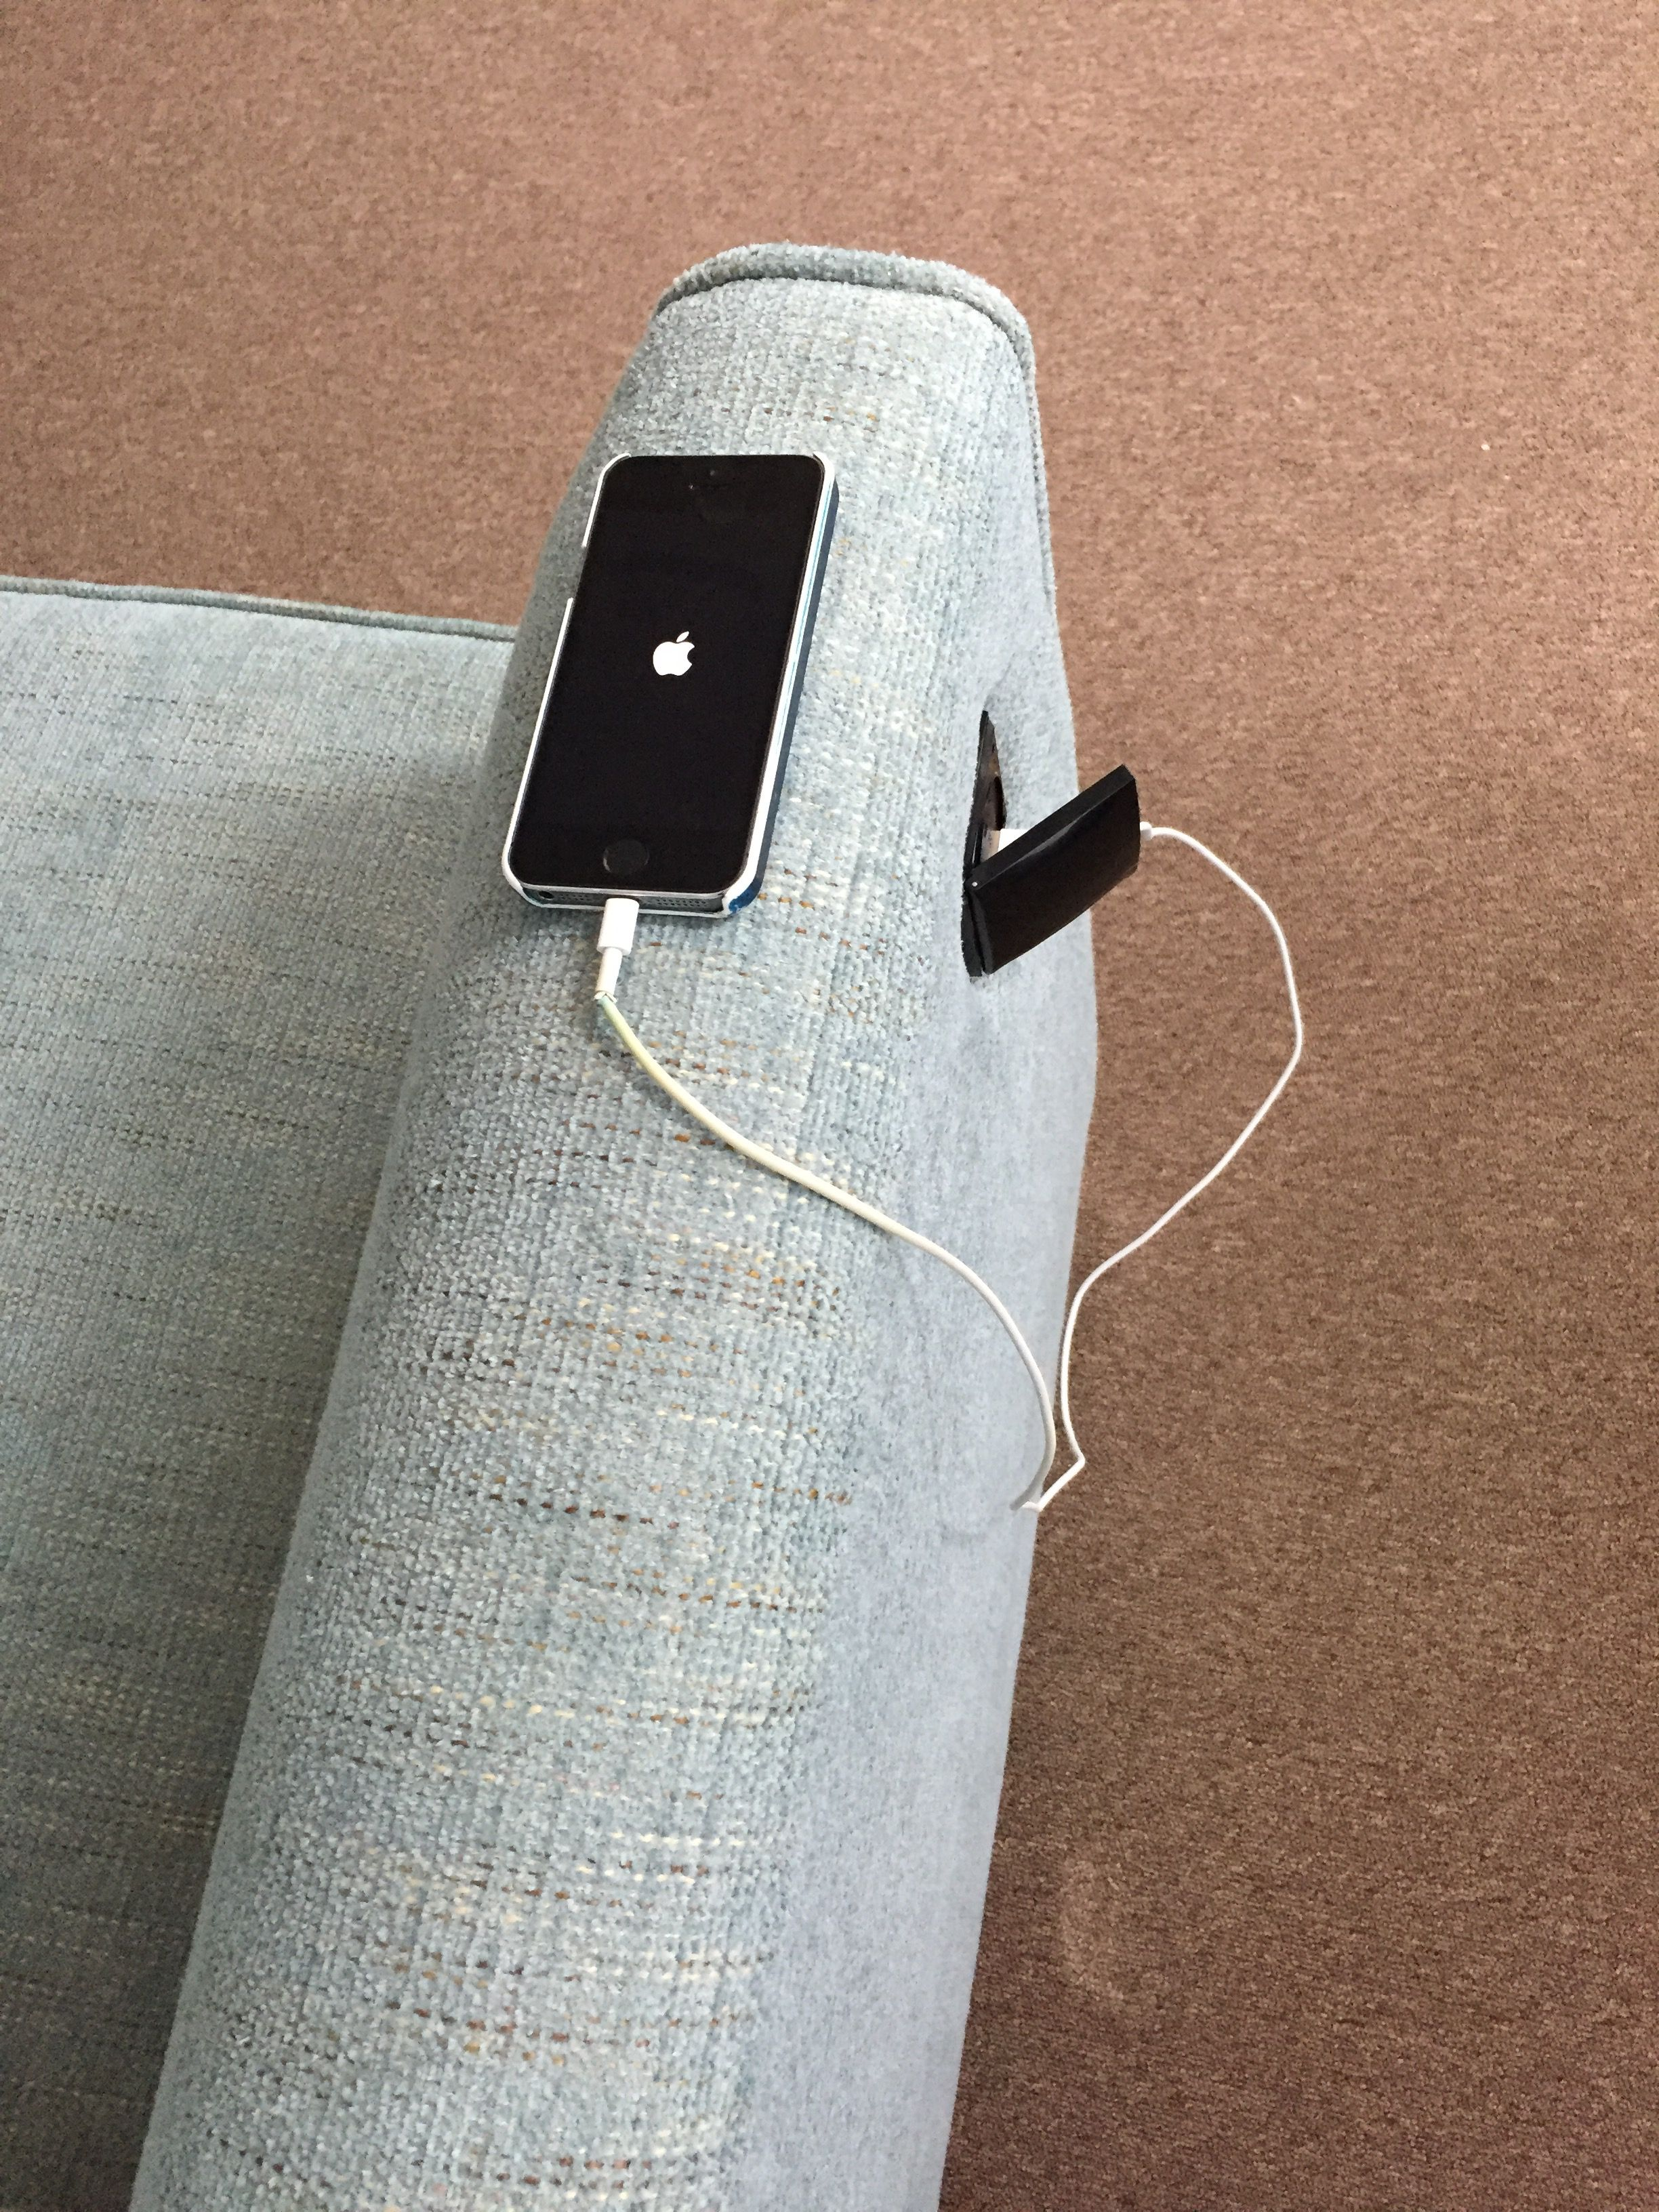 Sofa Which Incorporates A Usb Charger So You Can Charge